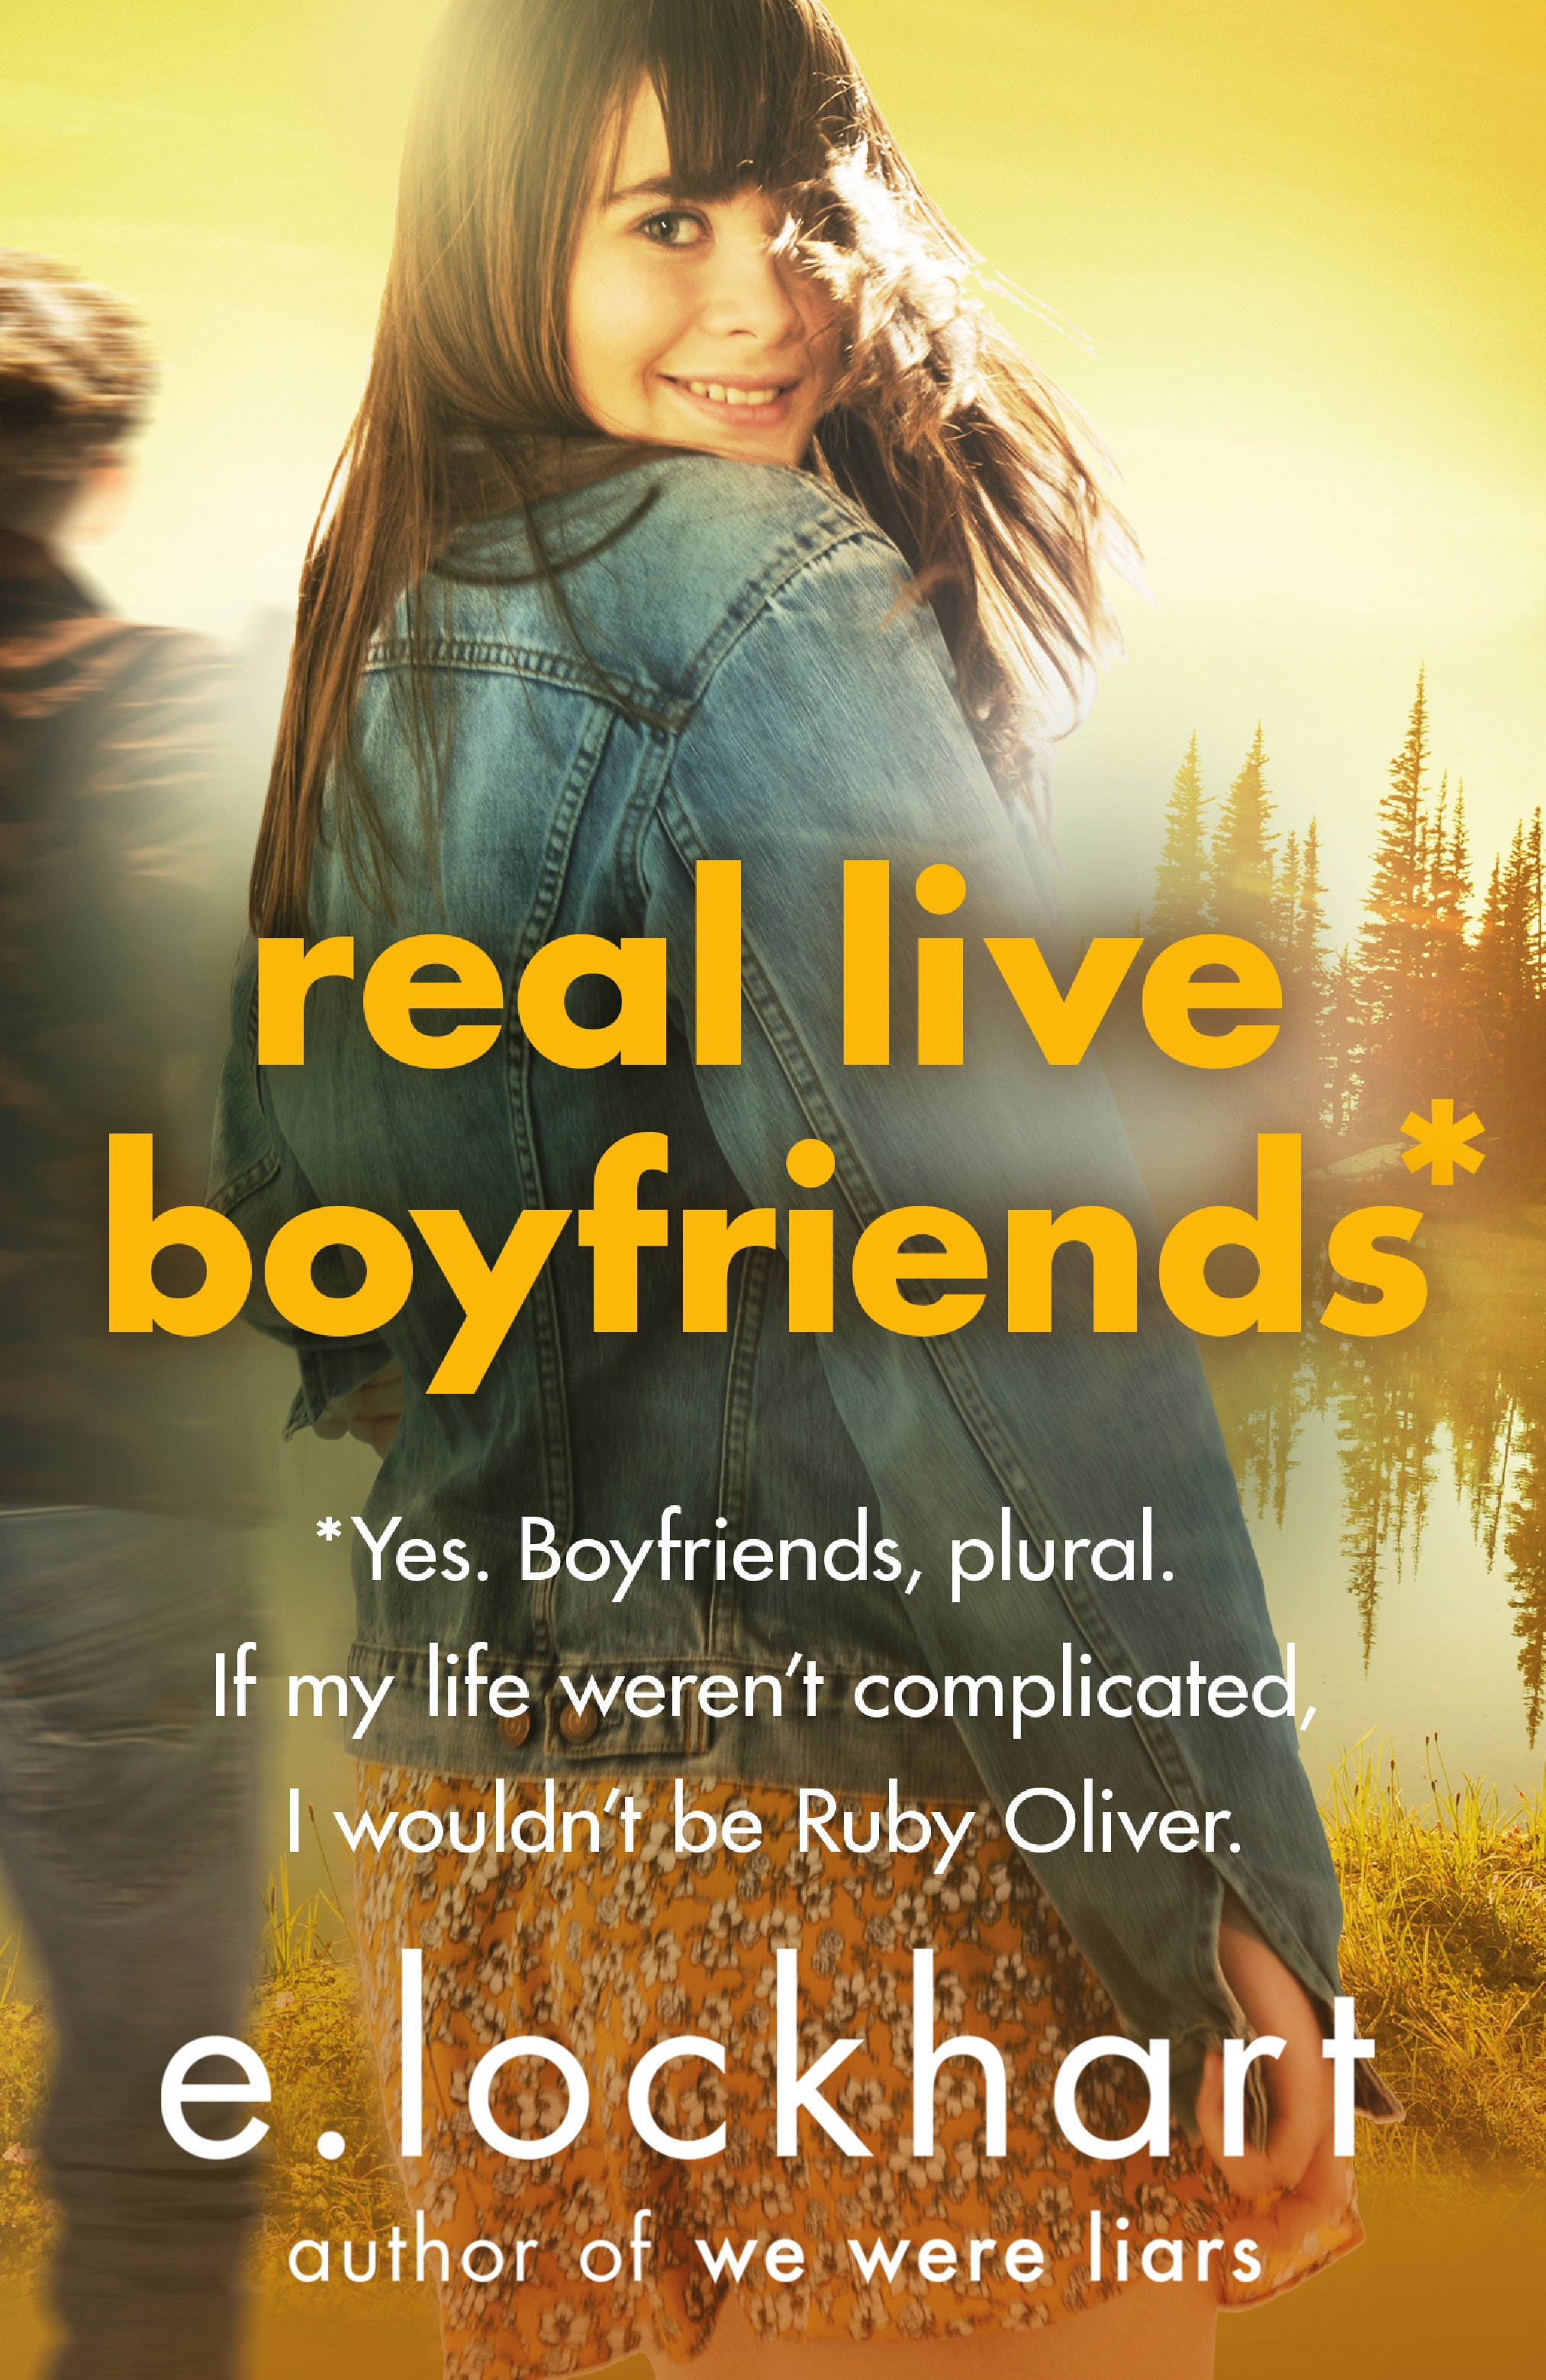 Ruby Oliver 4: Real Live Boyfriends by E. LockhartEmily Jenkins